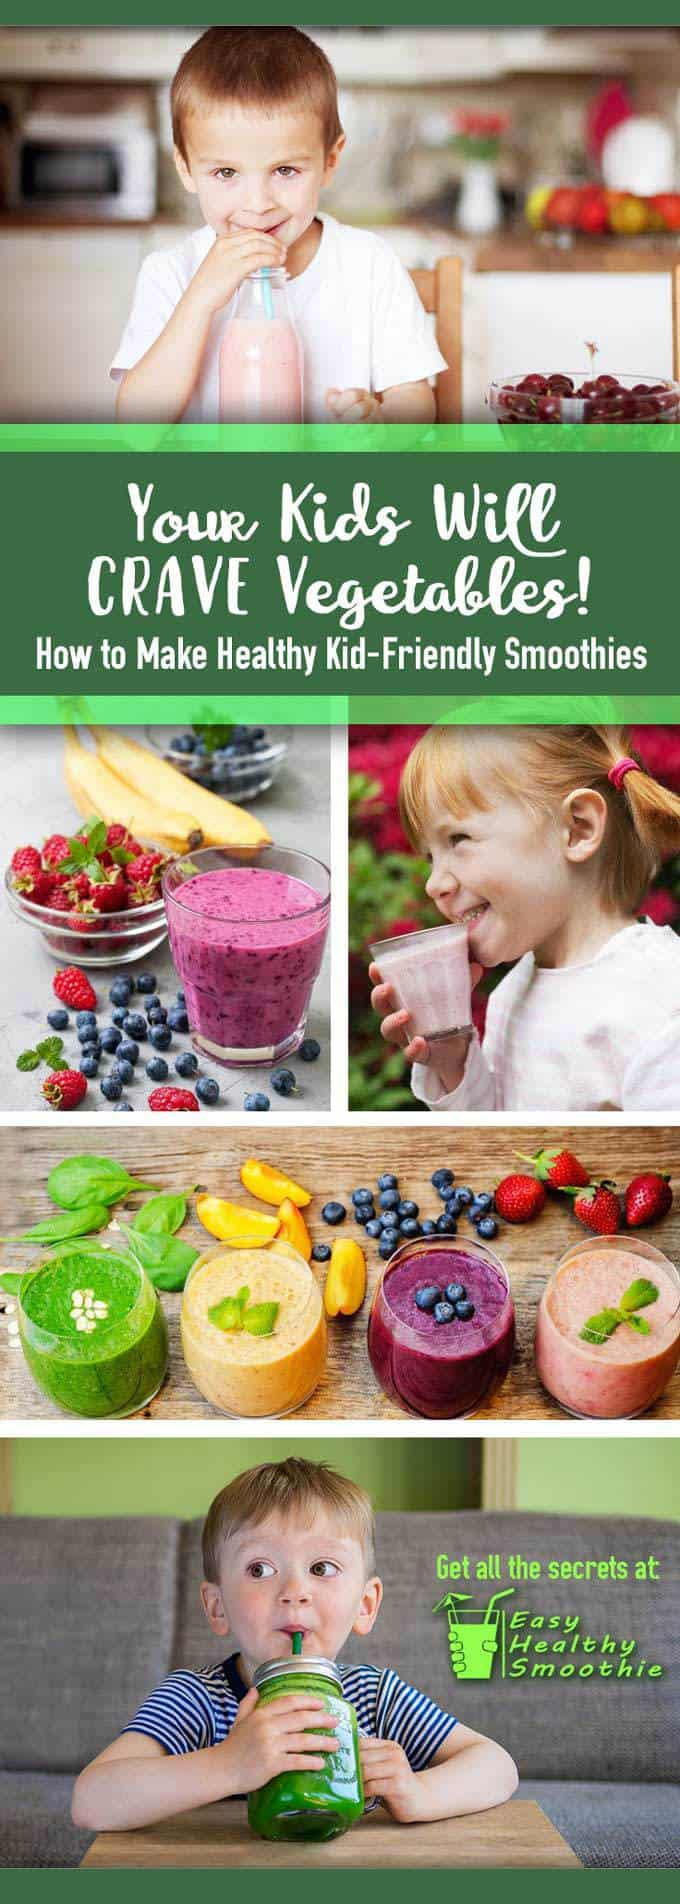 Healthy Kid Friendly Smoothies  How to Make Ve able Smoothies Your Kids Will Love